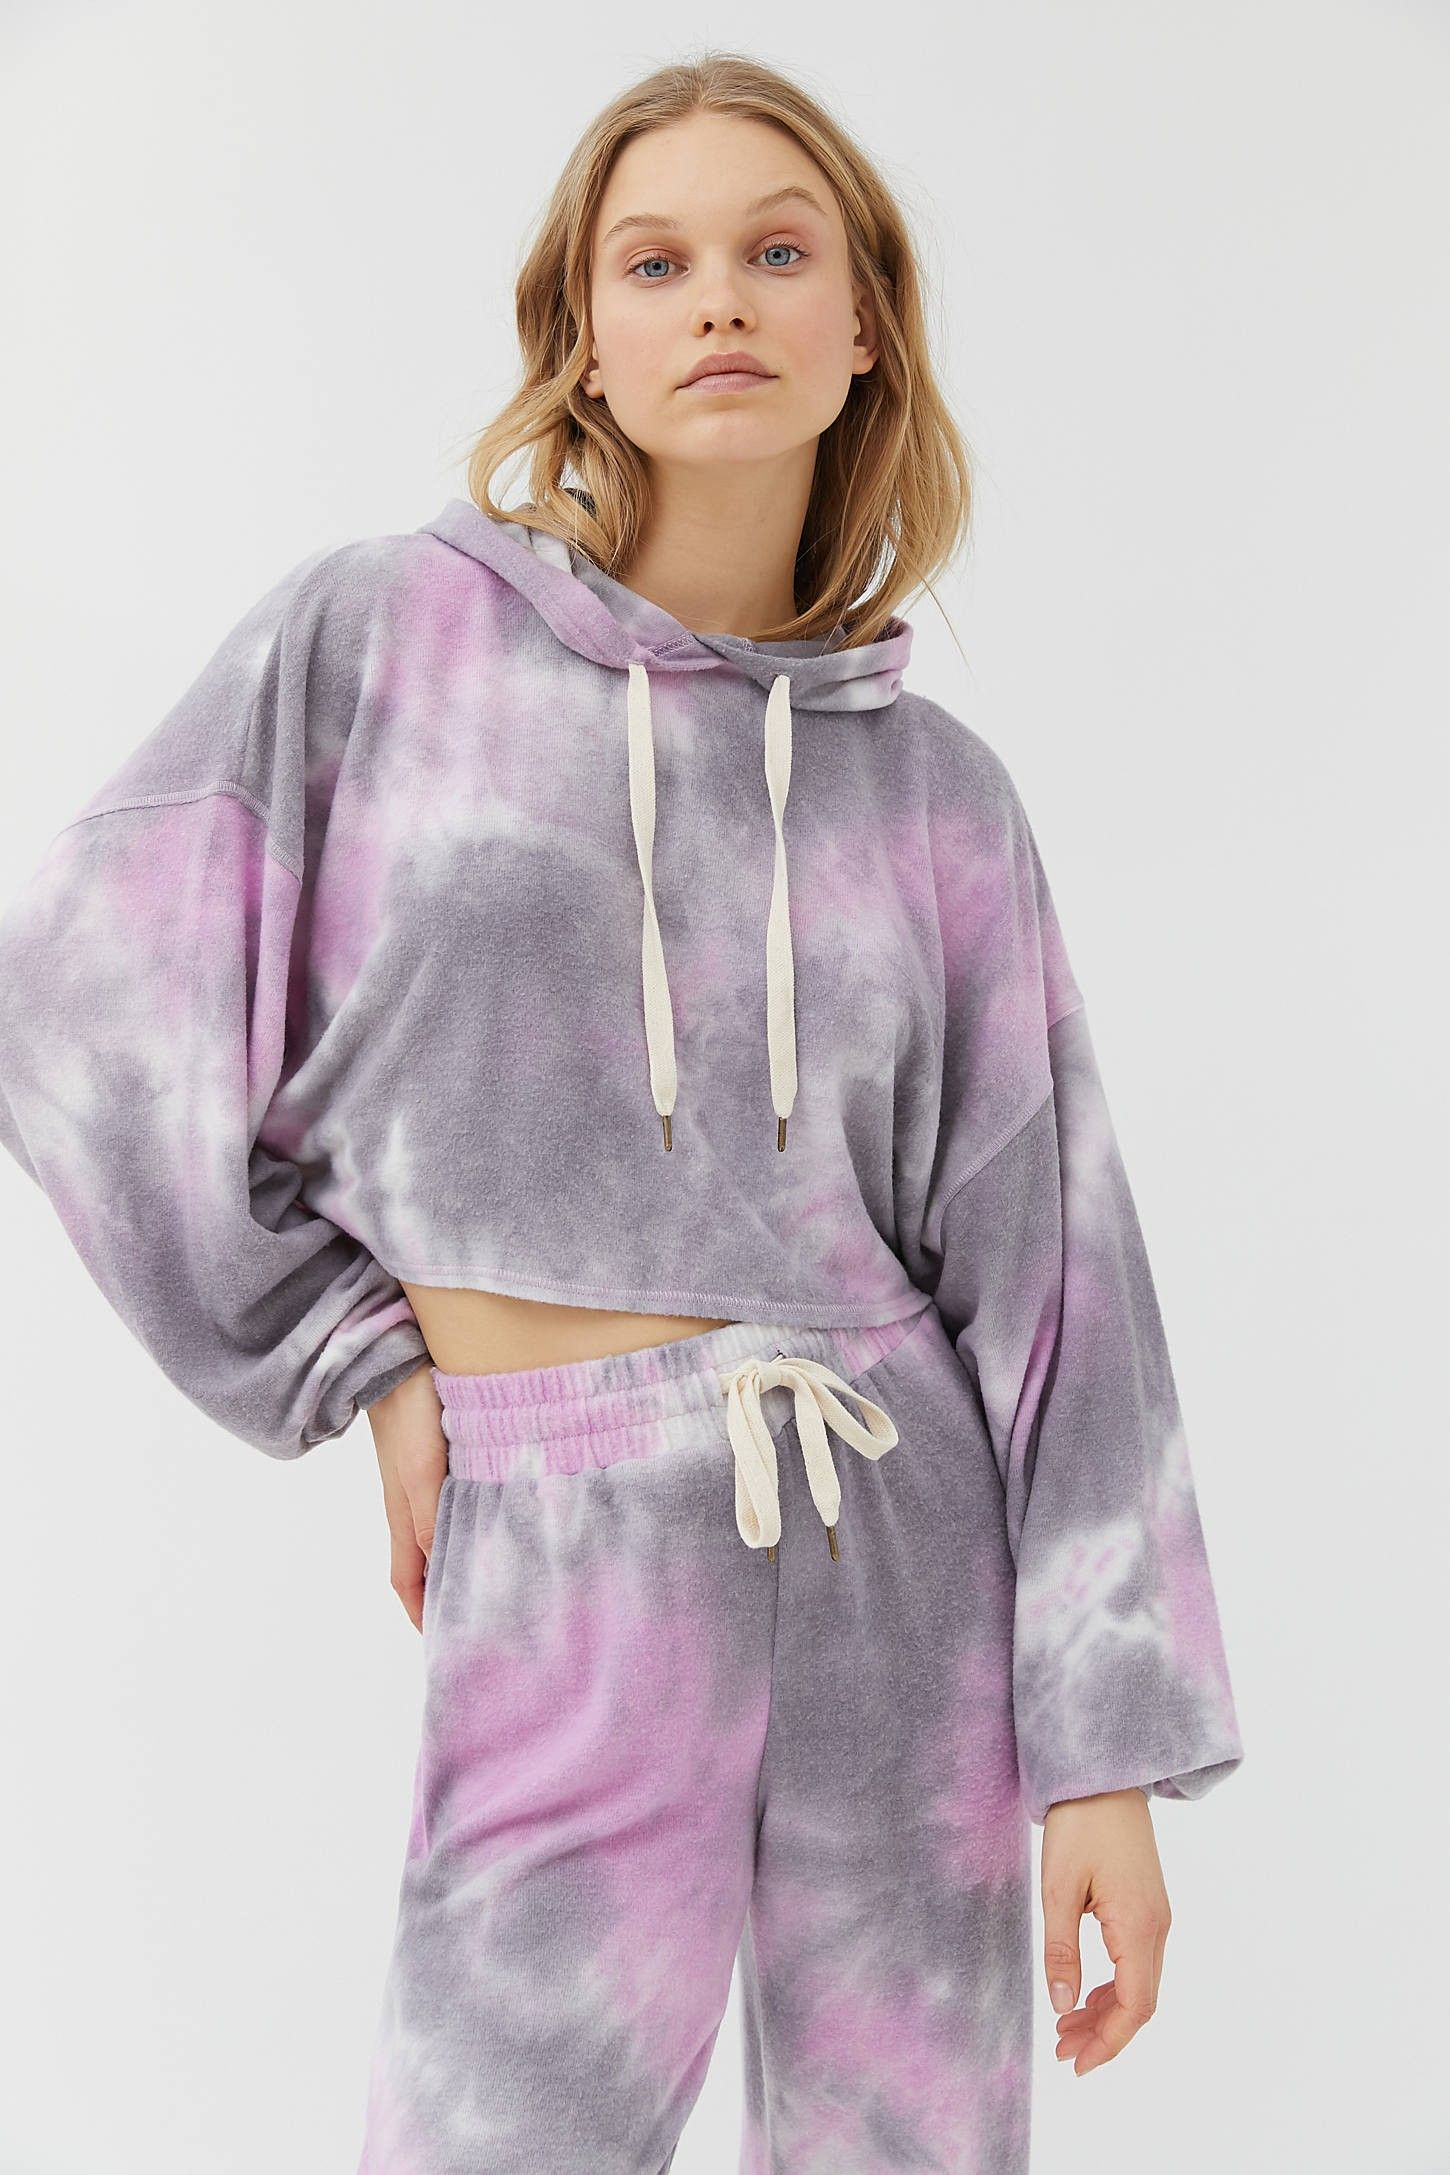 Out From Under Jenny Tie Dye Cropped Hoodie Sweatshirt Crop Sweatshirt Hoodie Hoodies Sweatshirts Hoodie [ 2175 x 1450 Pixel ]